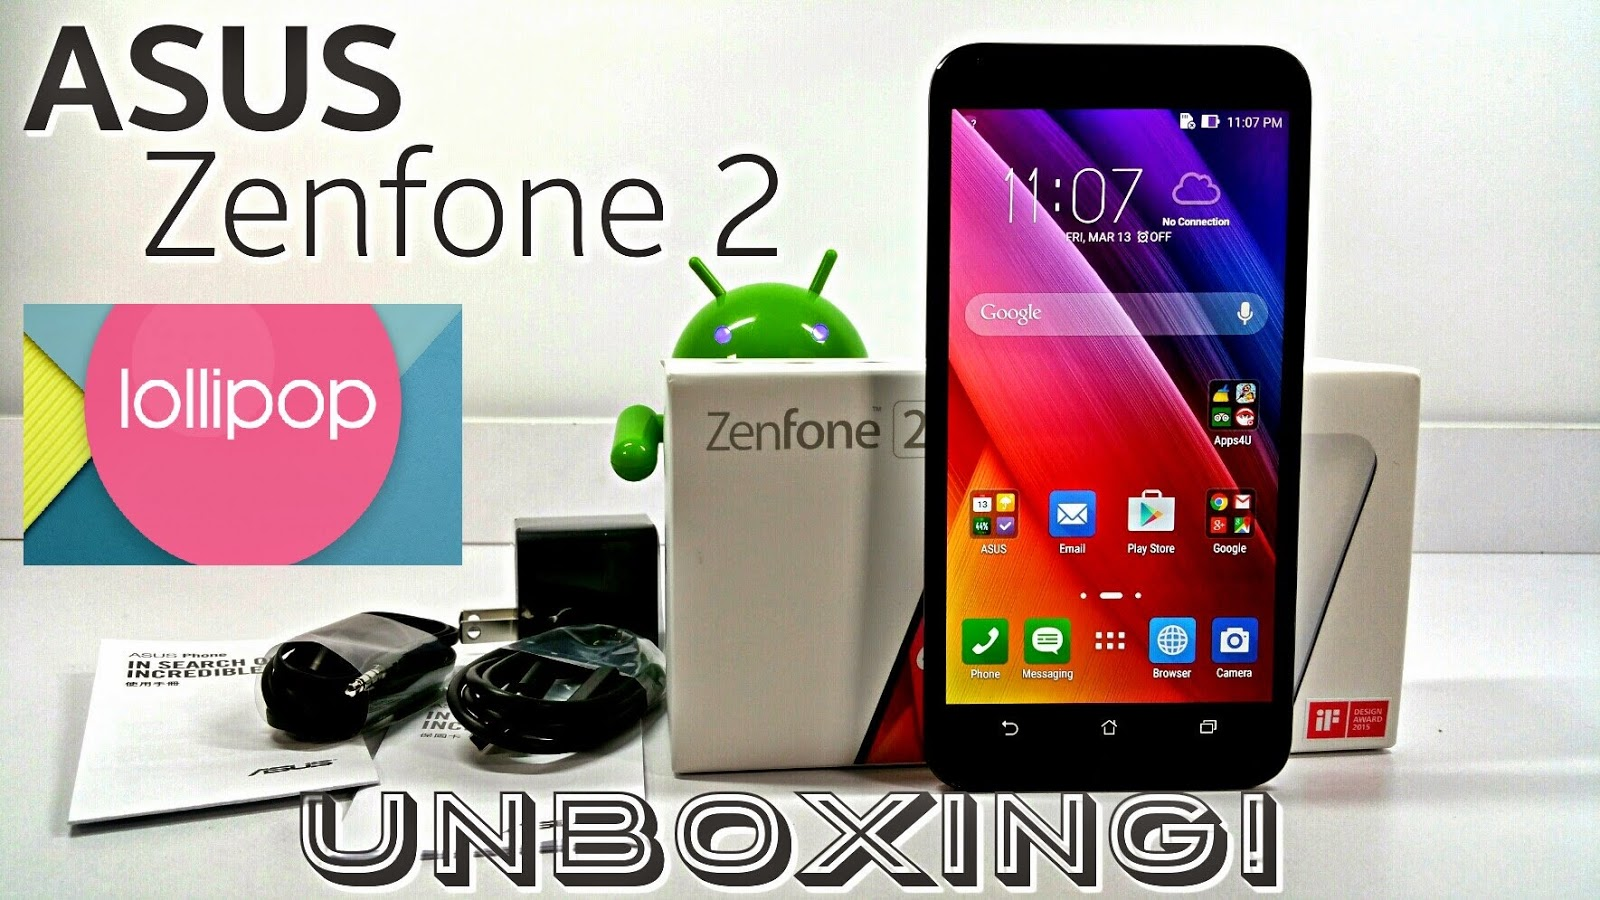 Asus Zenfone 2 UNBOXING Video Hands-on FULL Review